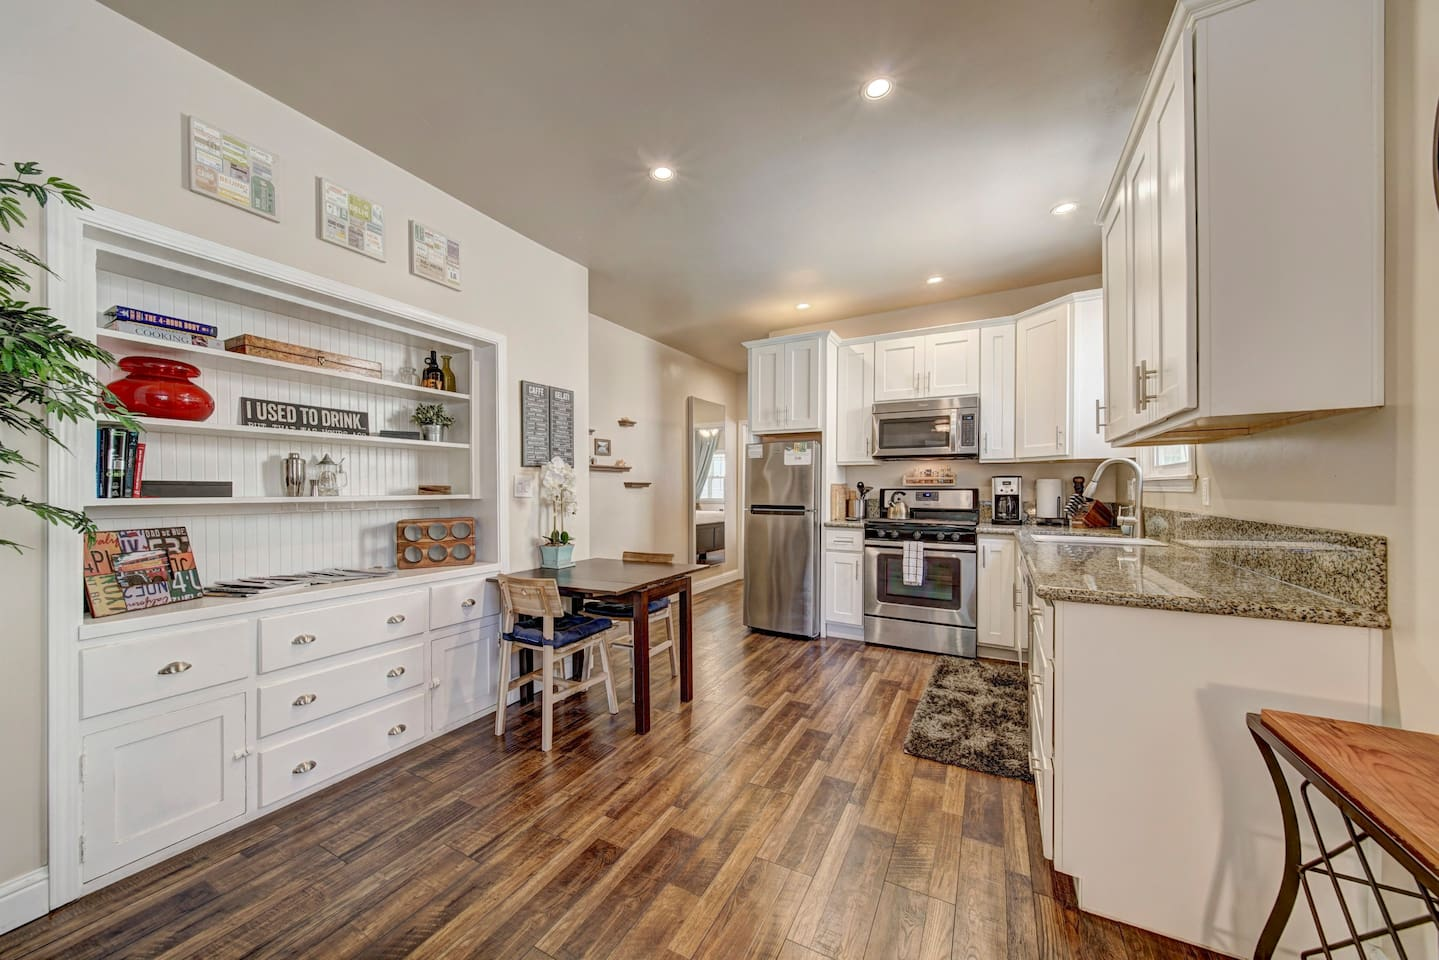 Nicely remodeled with full size kitchen to whip up a nice meal. The natural light streams in through a number of different windows and the open space concept has a nice tranquil flow to it